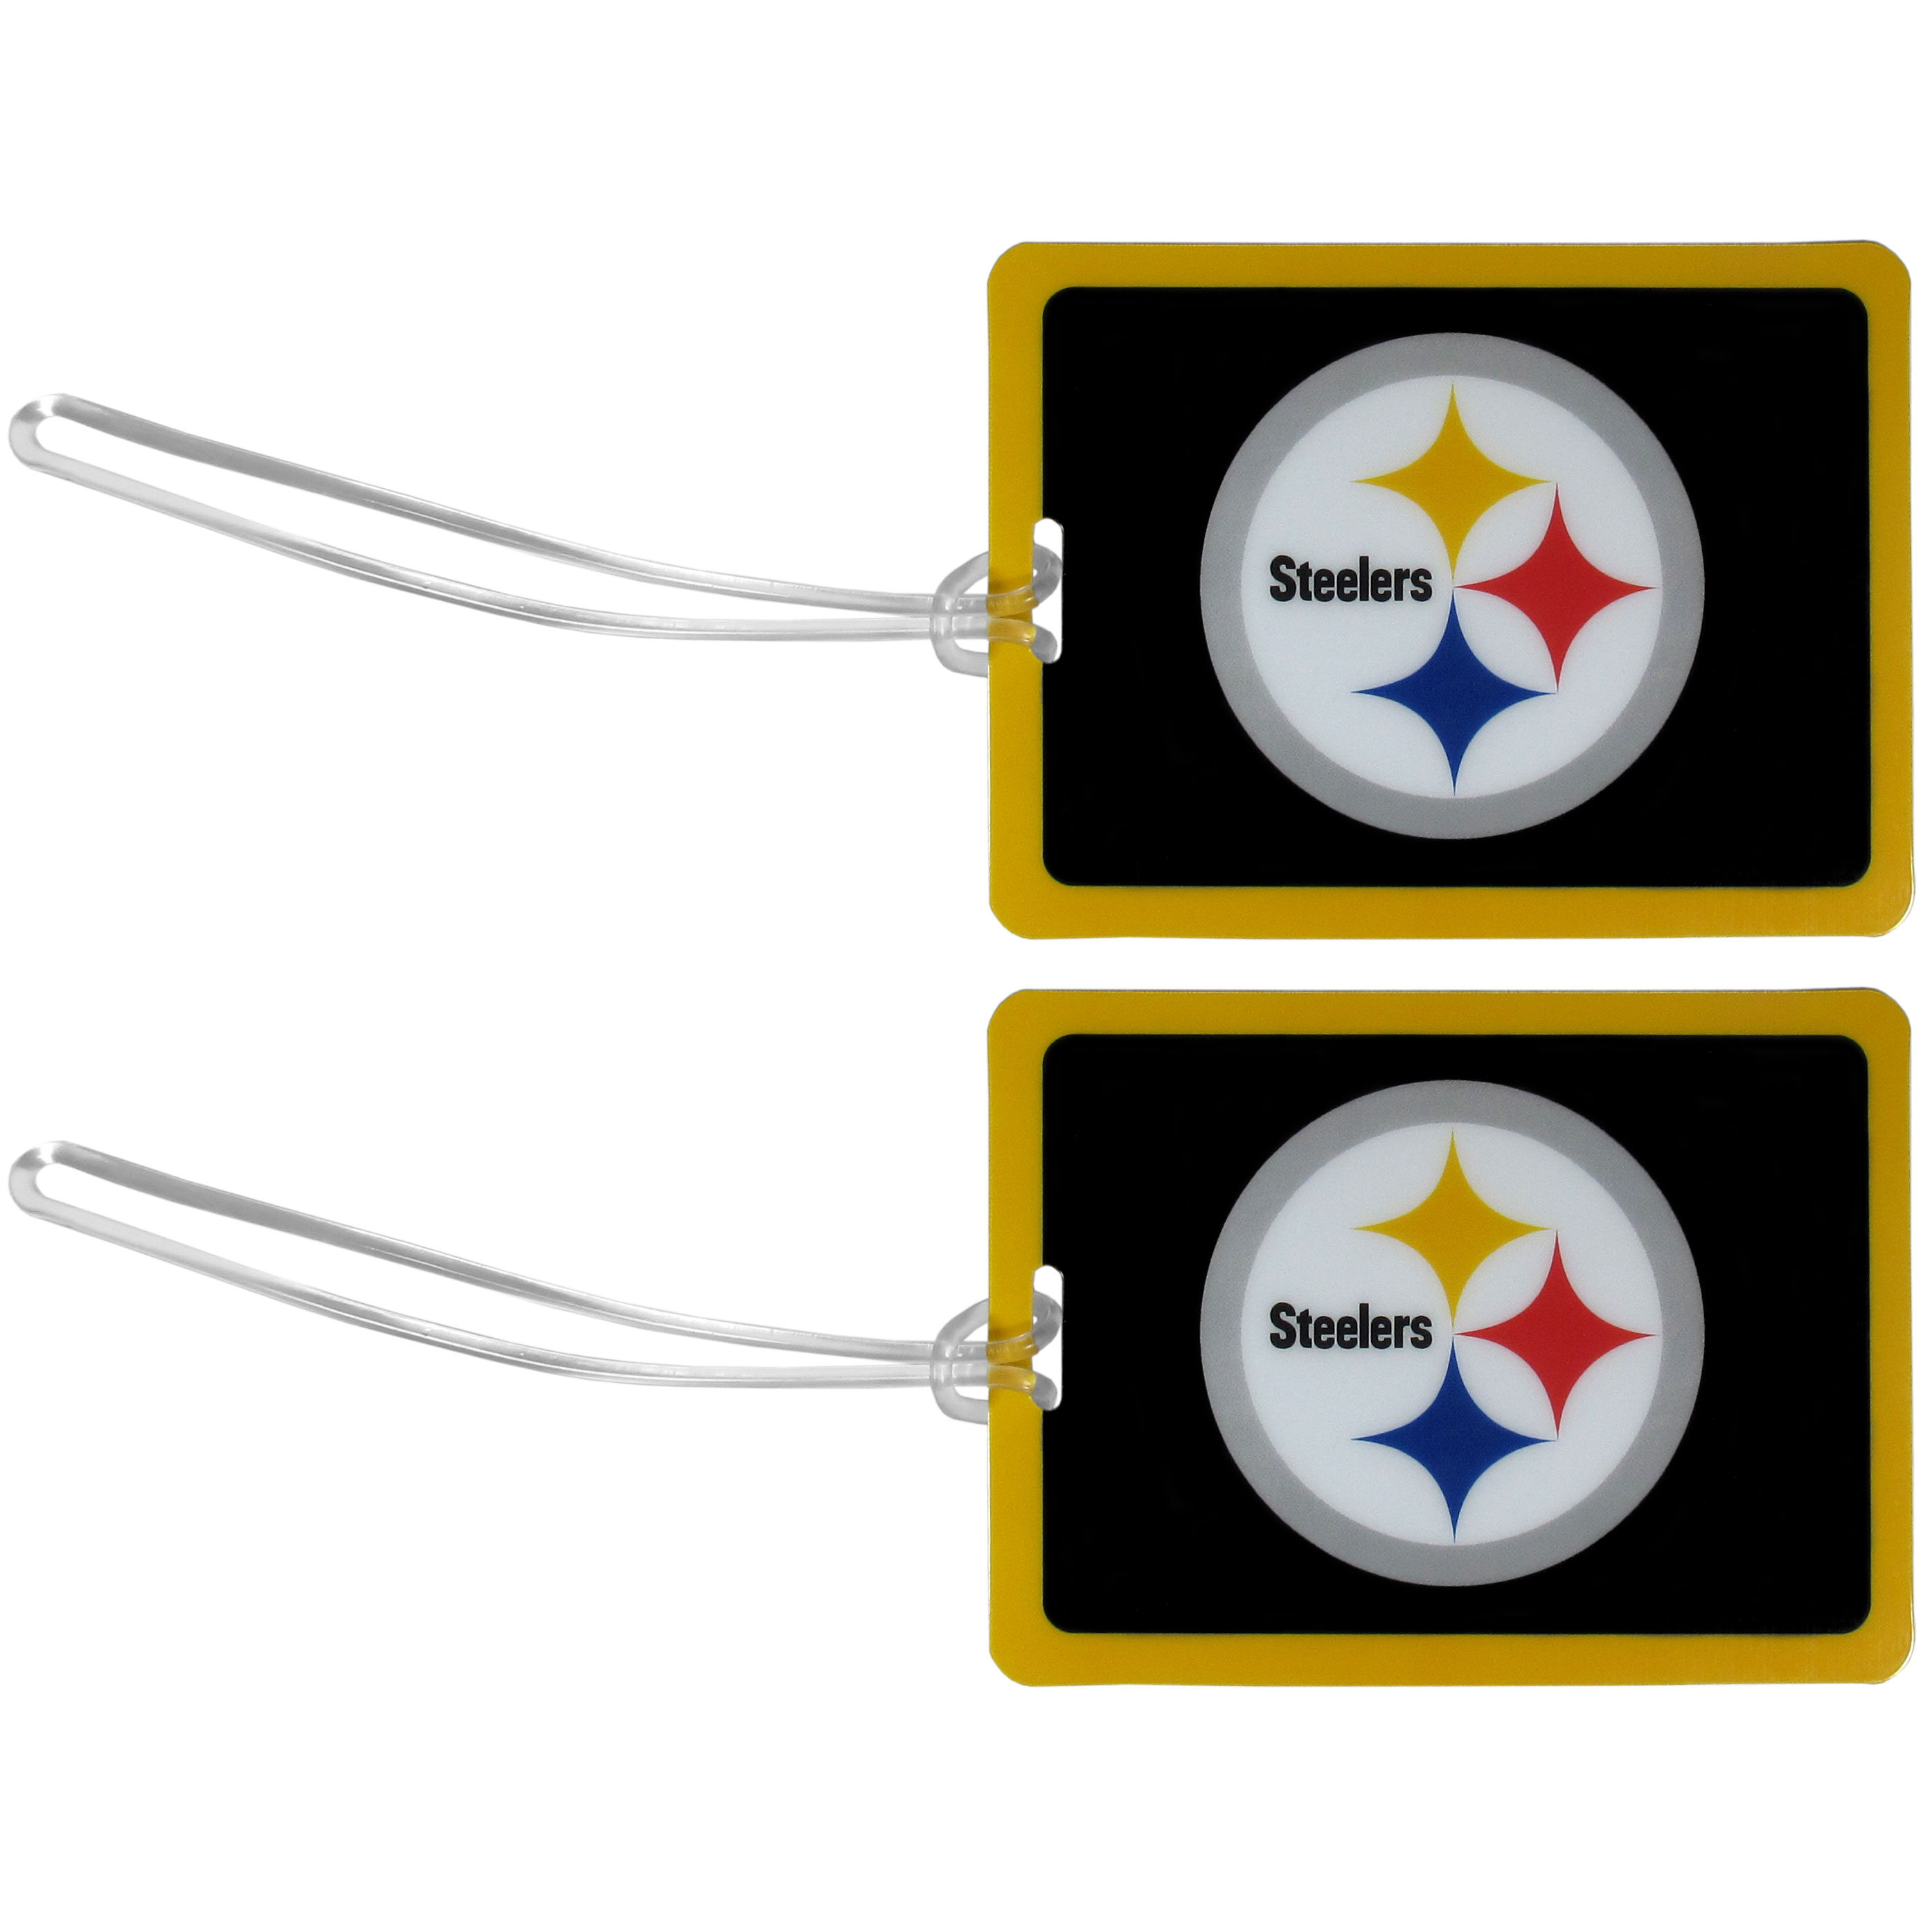 Pittsburgh Steelers Vinyl Luggage Tag, 2pk - Tired of trying to spot your suitcase or bag in a sea of luggage? Try our large and colorful Pittsburgh Steelers luggage tags. The tag is 4x3 inches and has a 5 inch cord to attach it easily to your bags, backpacks or luggage. The front of the tag features the team logo in a bright, team colored background and you can write you name, address and phone number on the back of the tag.